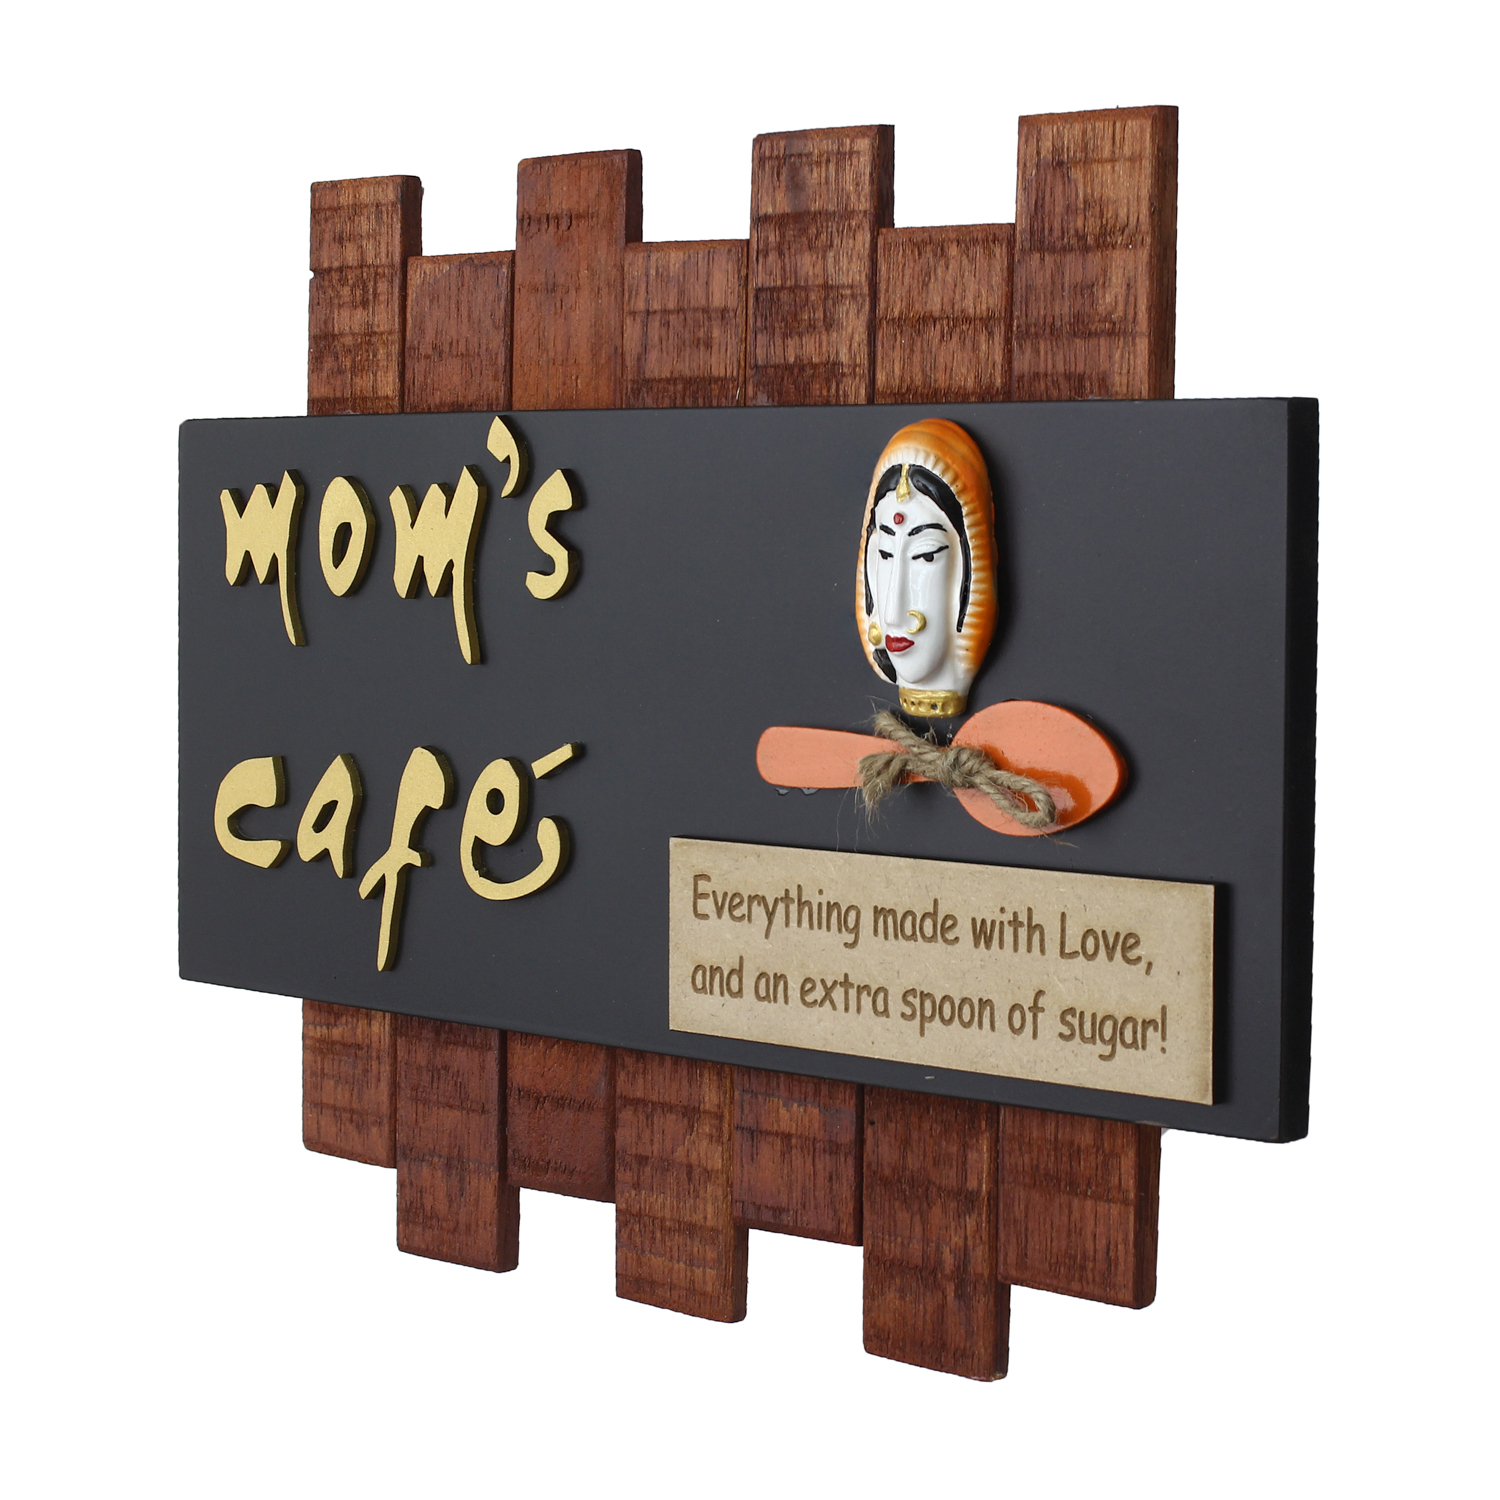 Wooden Moms Cafe Wall Hanging Decorative Showpiece Indian Home Decor